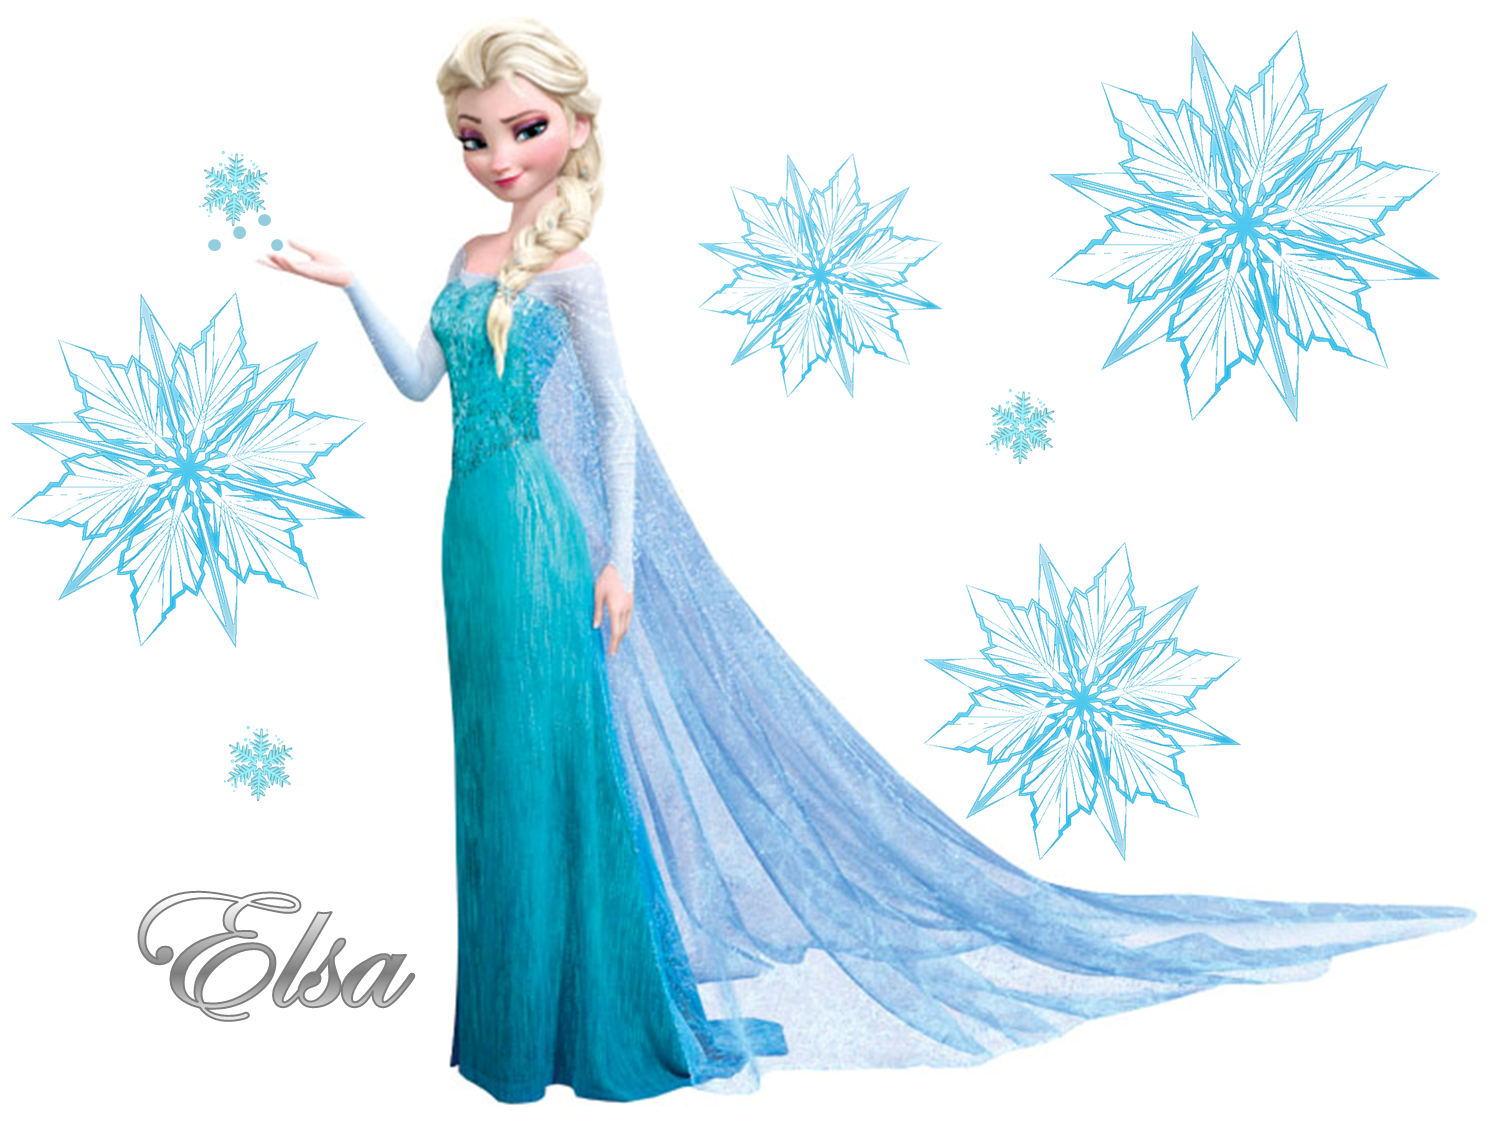 Elsa pic - Frozen Photo (37919442) - Fanpop